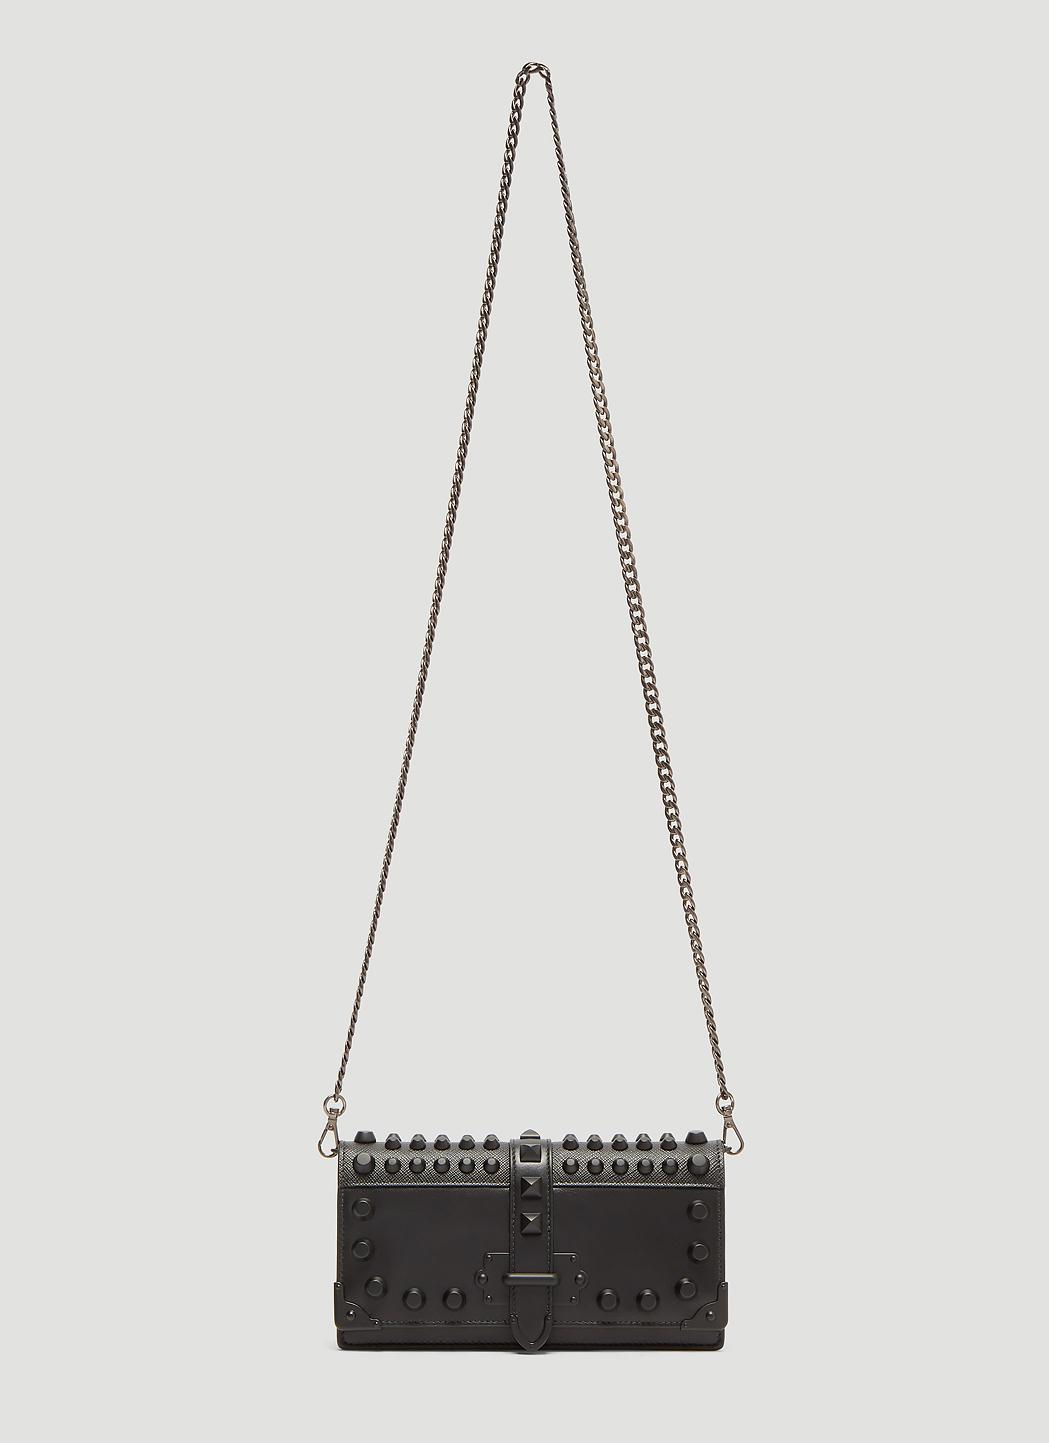 ab224dc70338 Prada Cahier Shoulder Bag In Black in Black - Lyst